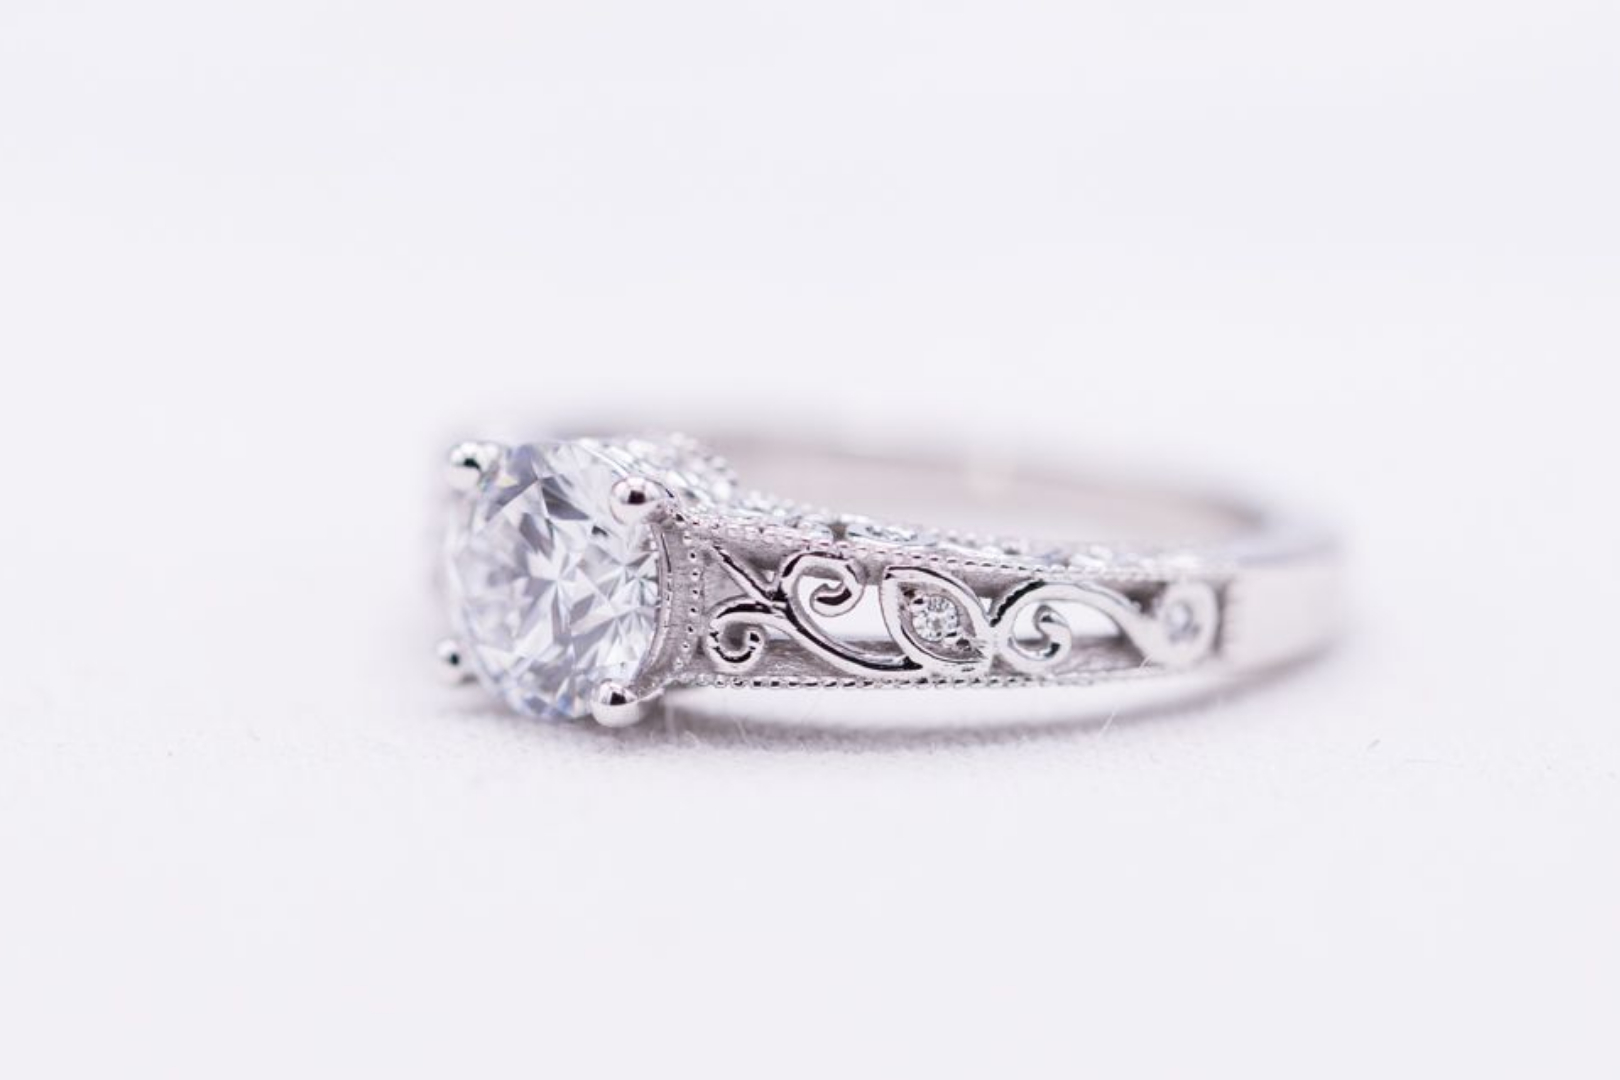 Round lab-created diamond in white gold with filigree